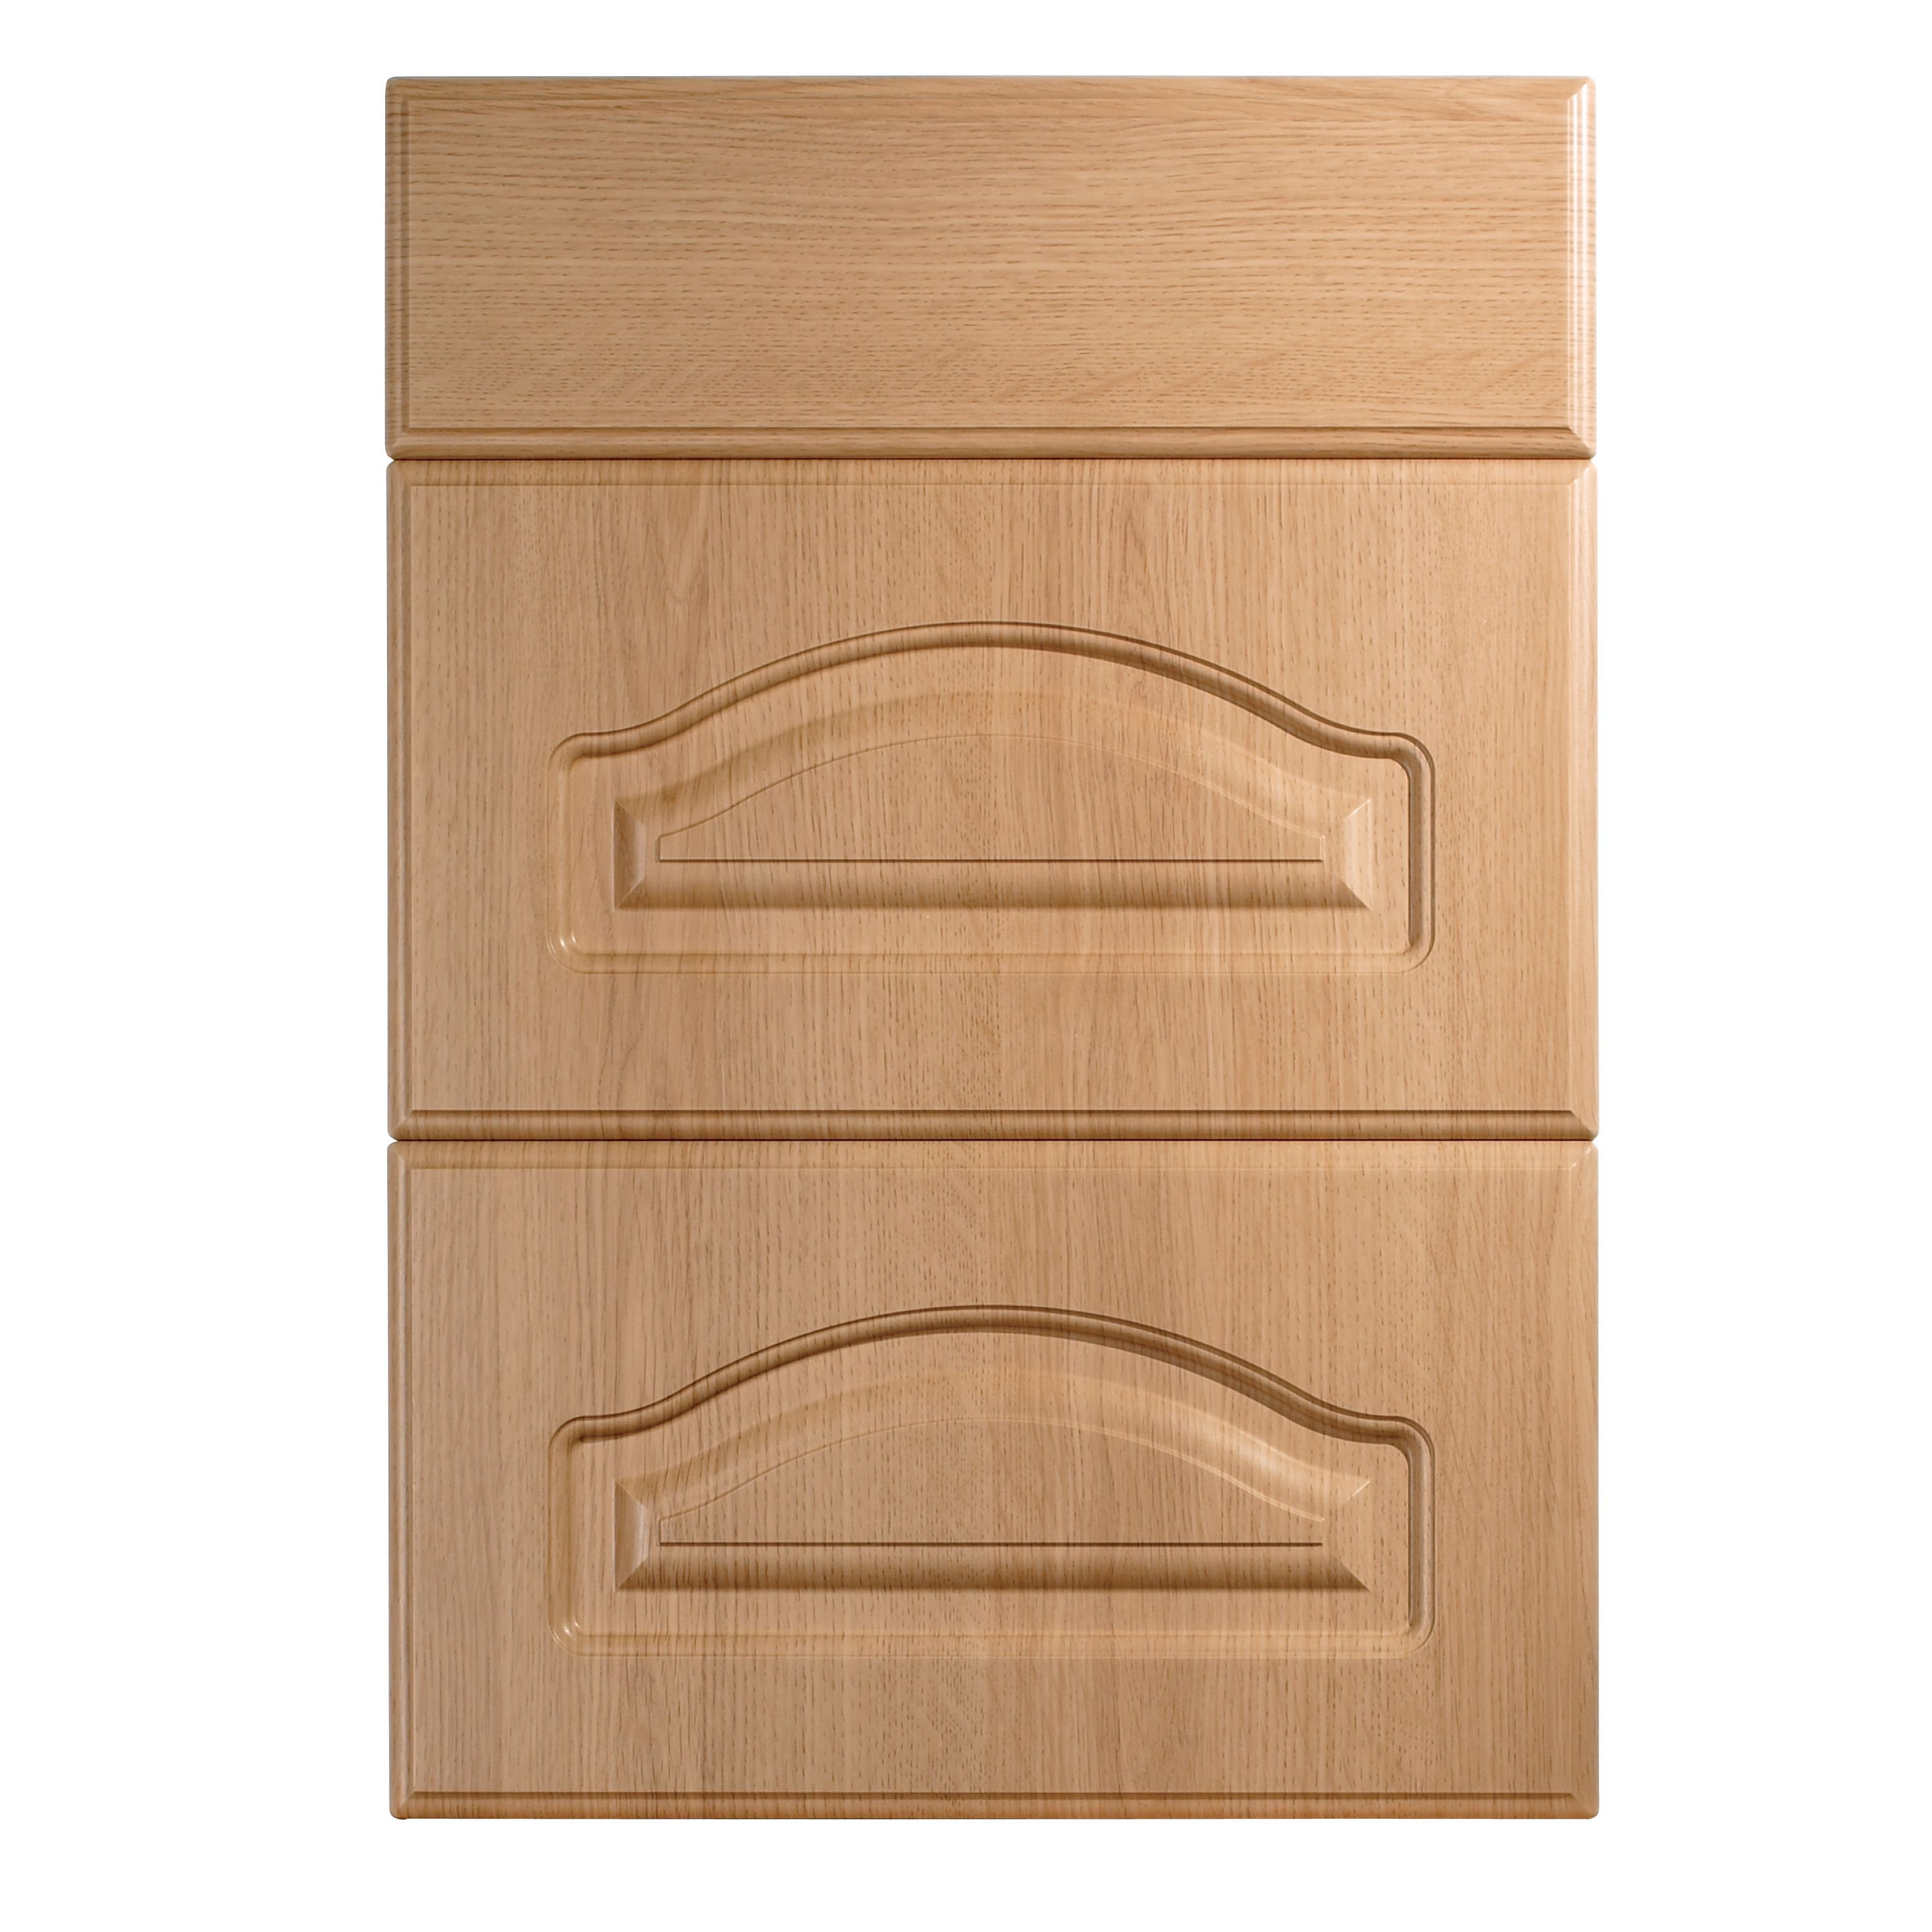 IT Kitchens Chilton Traditional Oak Effect Drawer Front